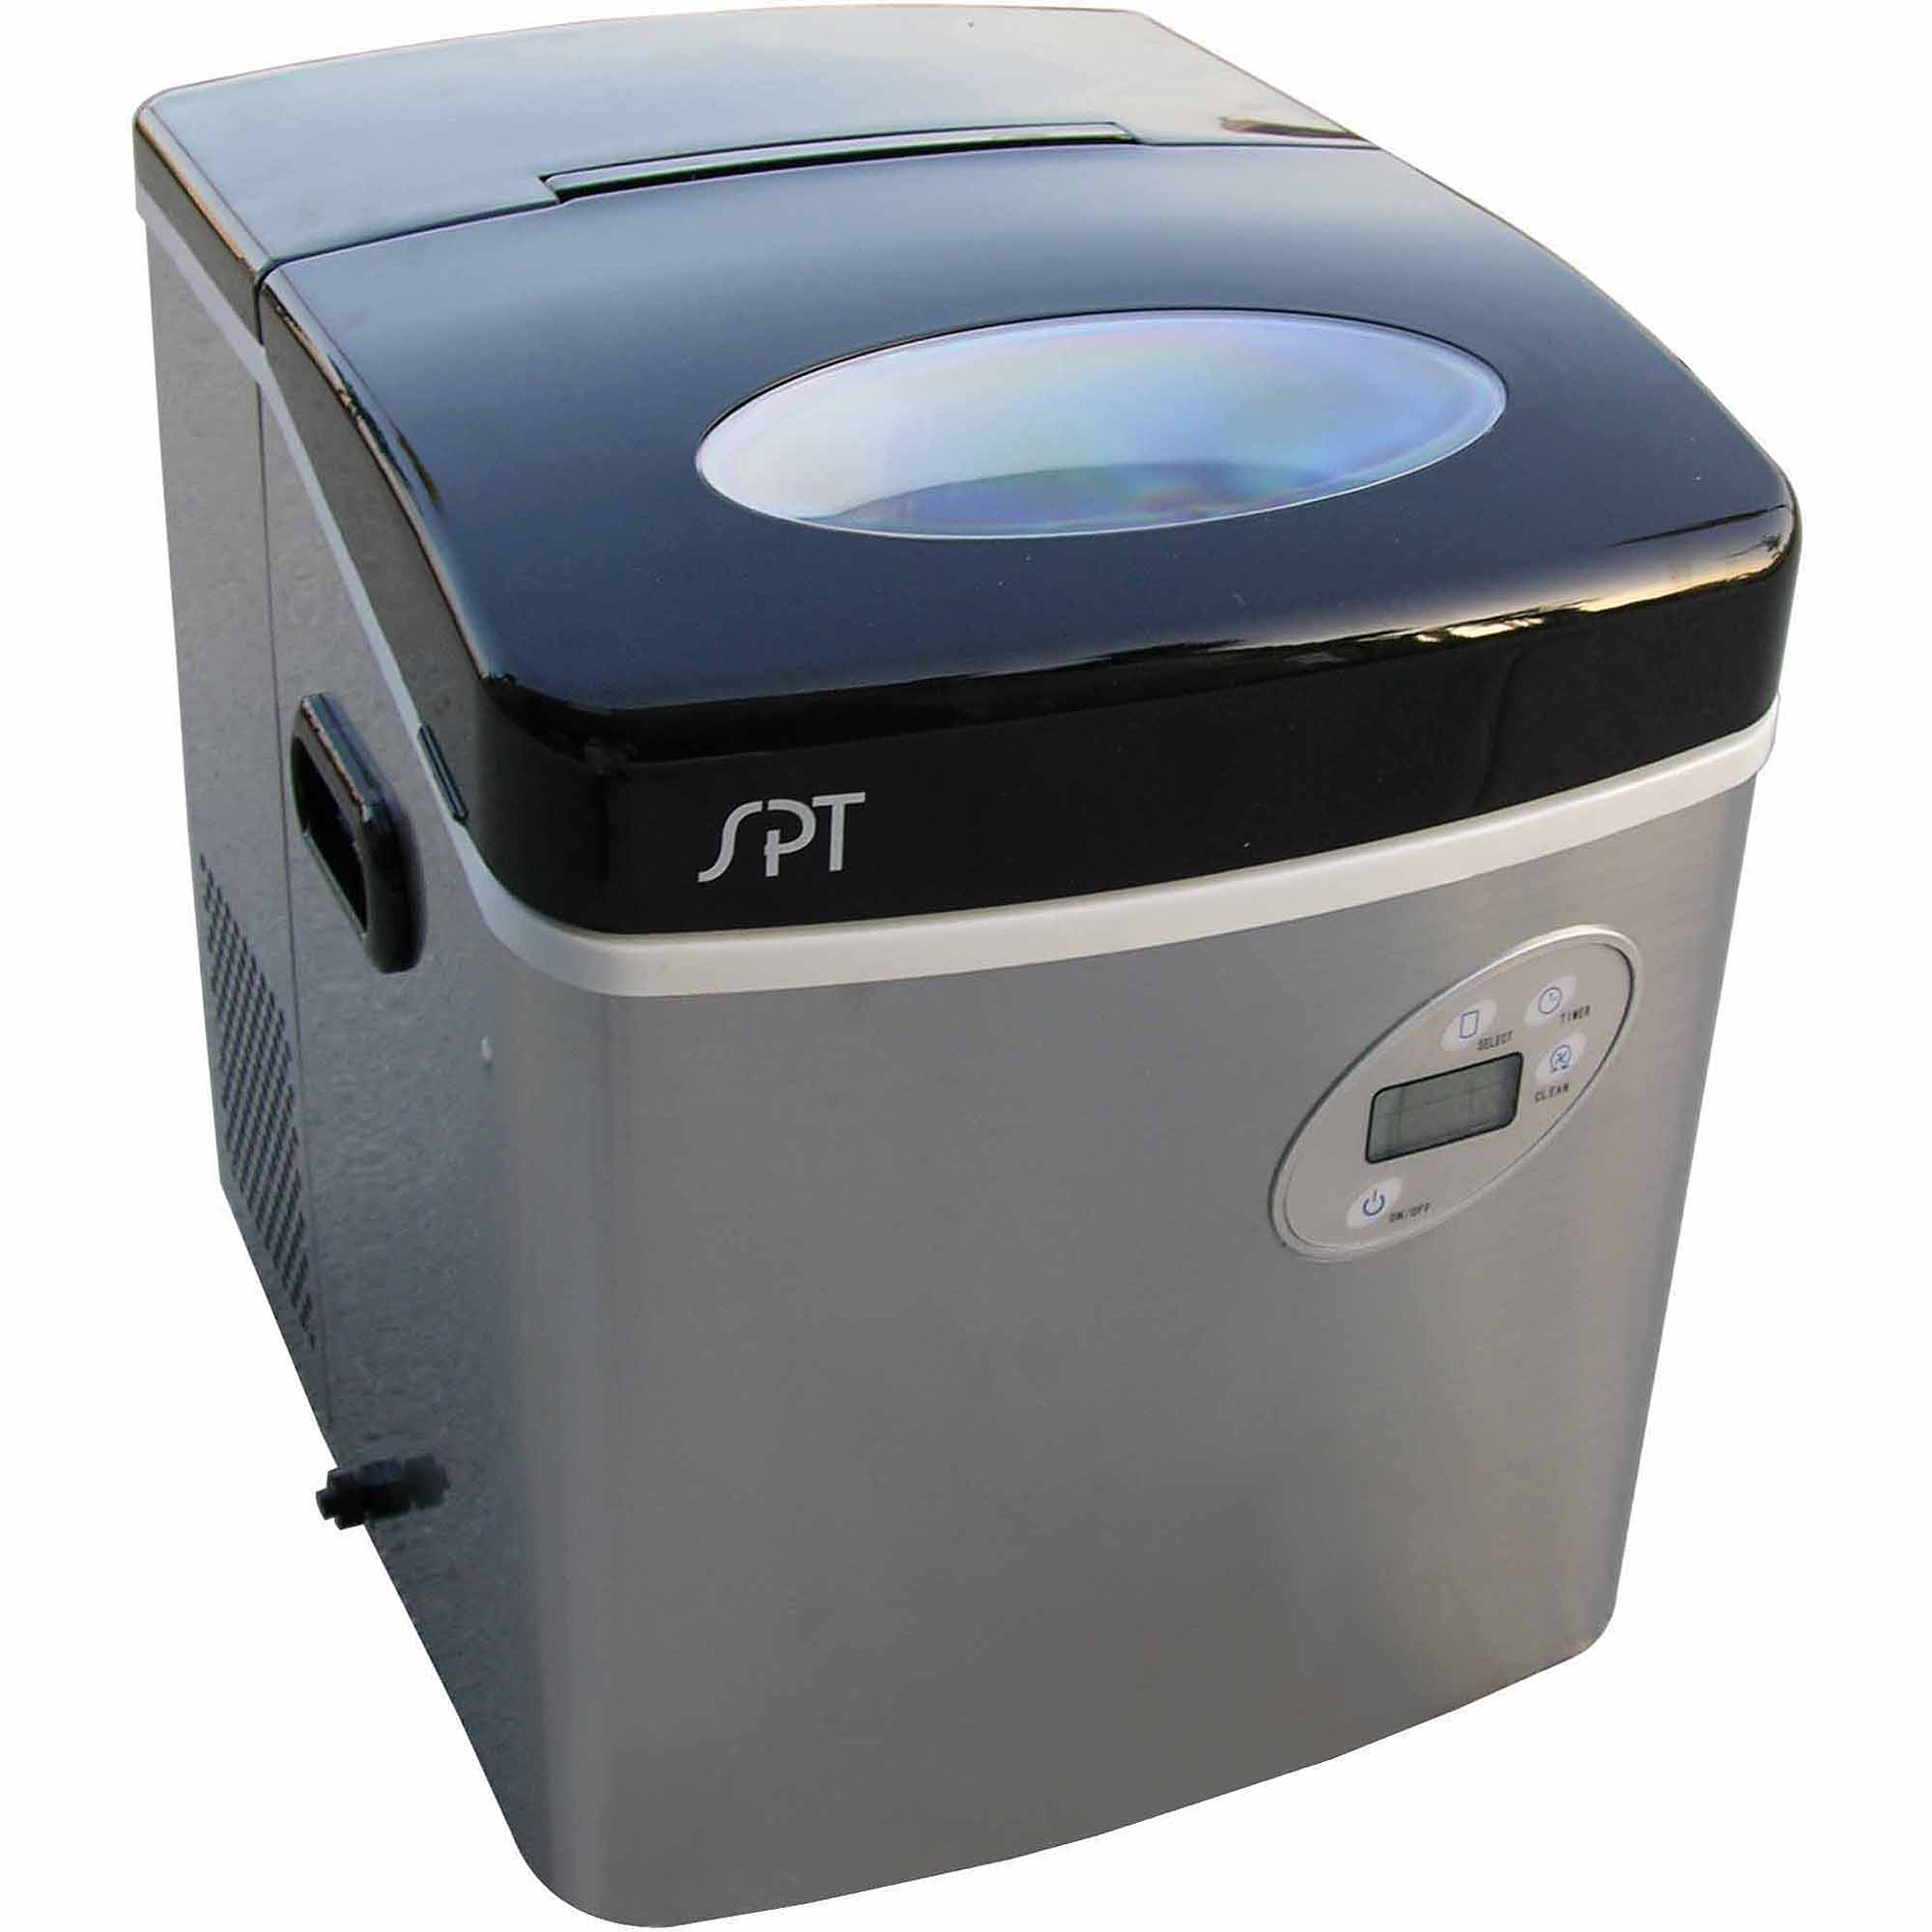 Sunpentown Portable Ice Maker with Digital Controls, Stainless Steel